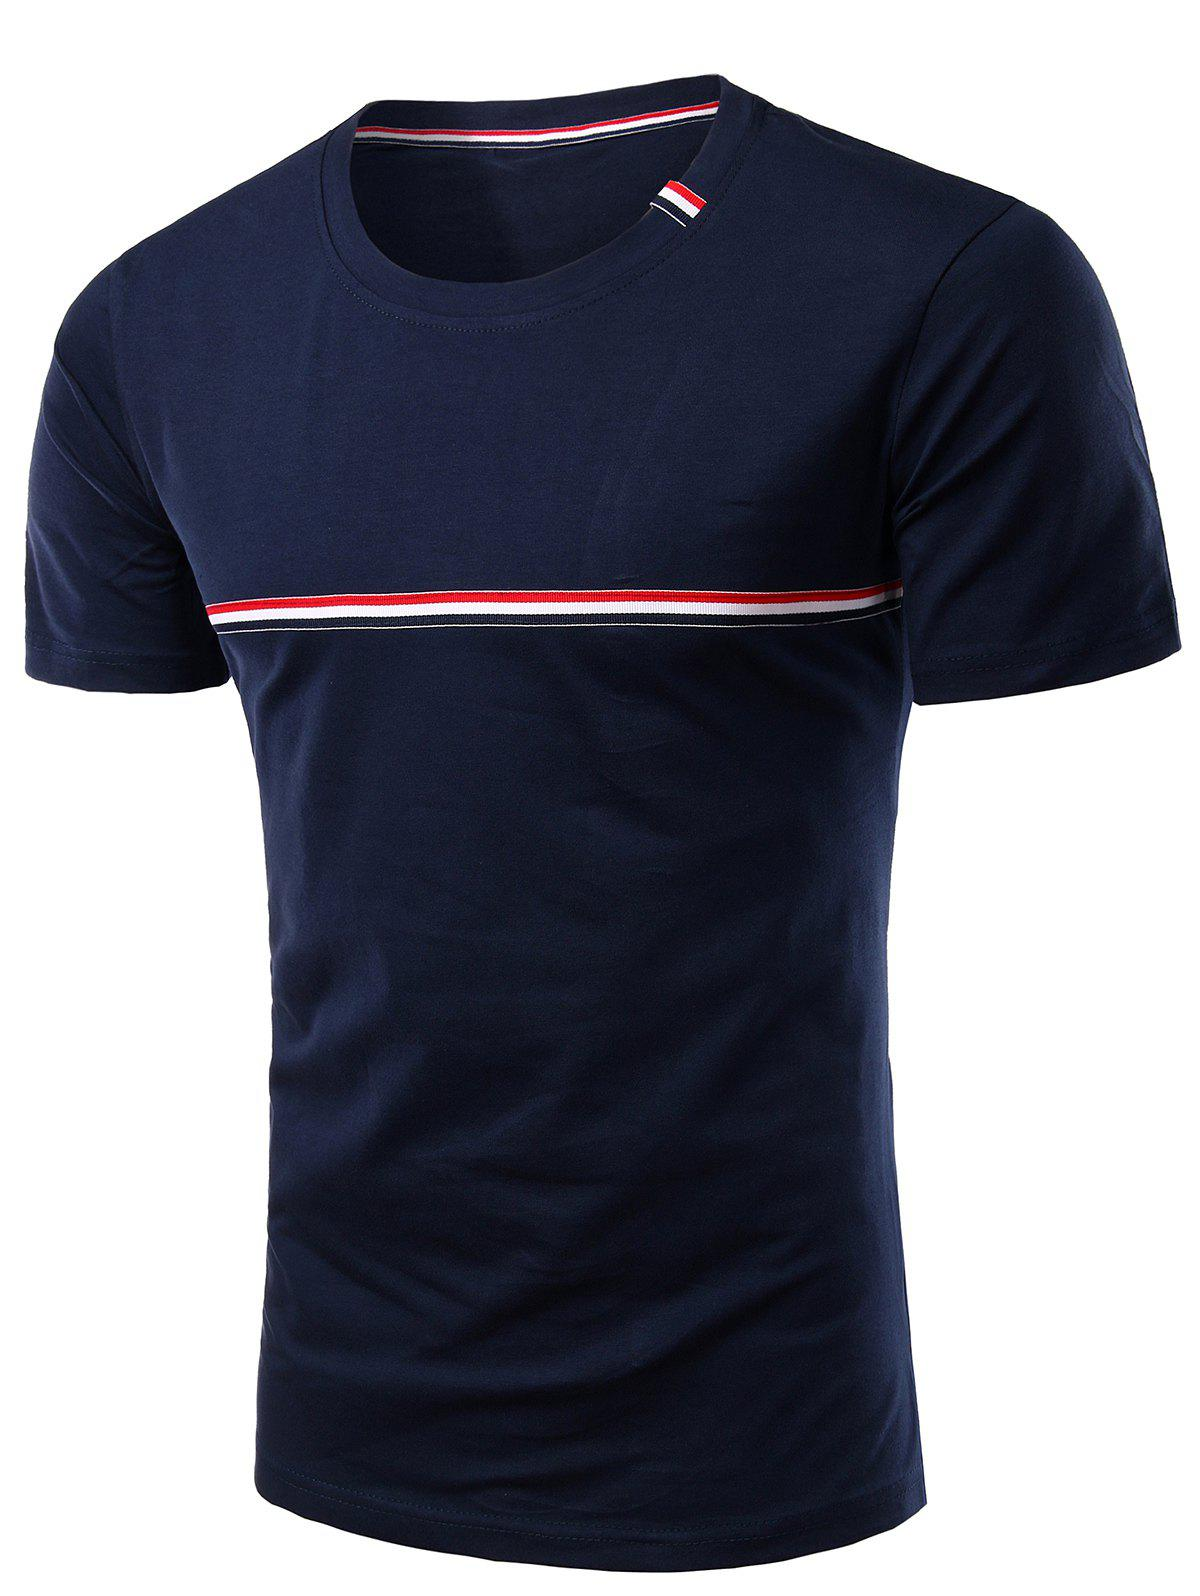 Trendy Round Neck Striped Printed Short Sleeve T-Shirt For Men - CADETBLUE 4XL